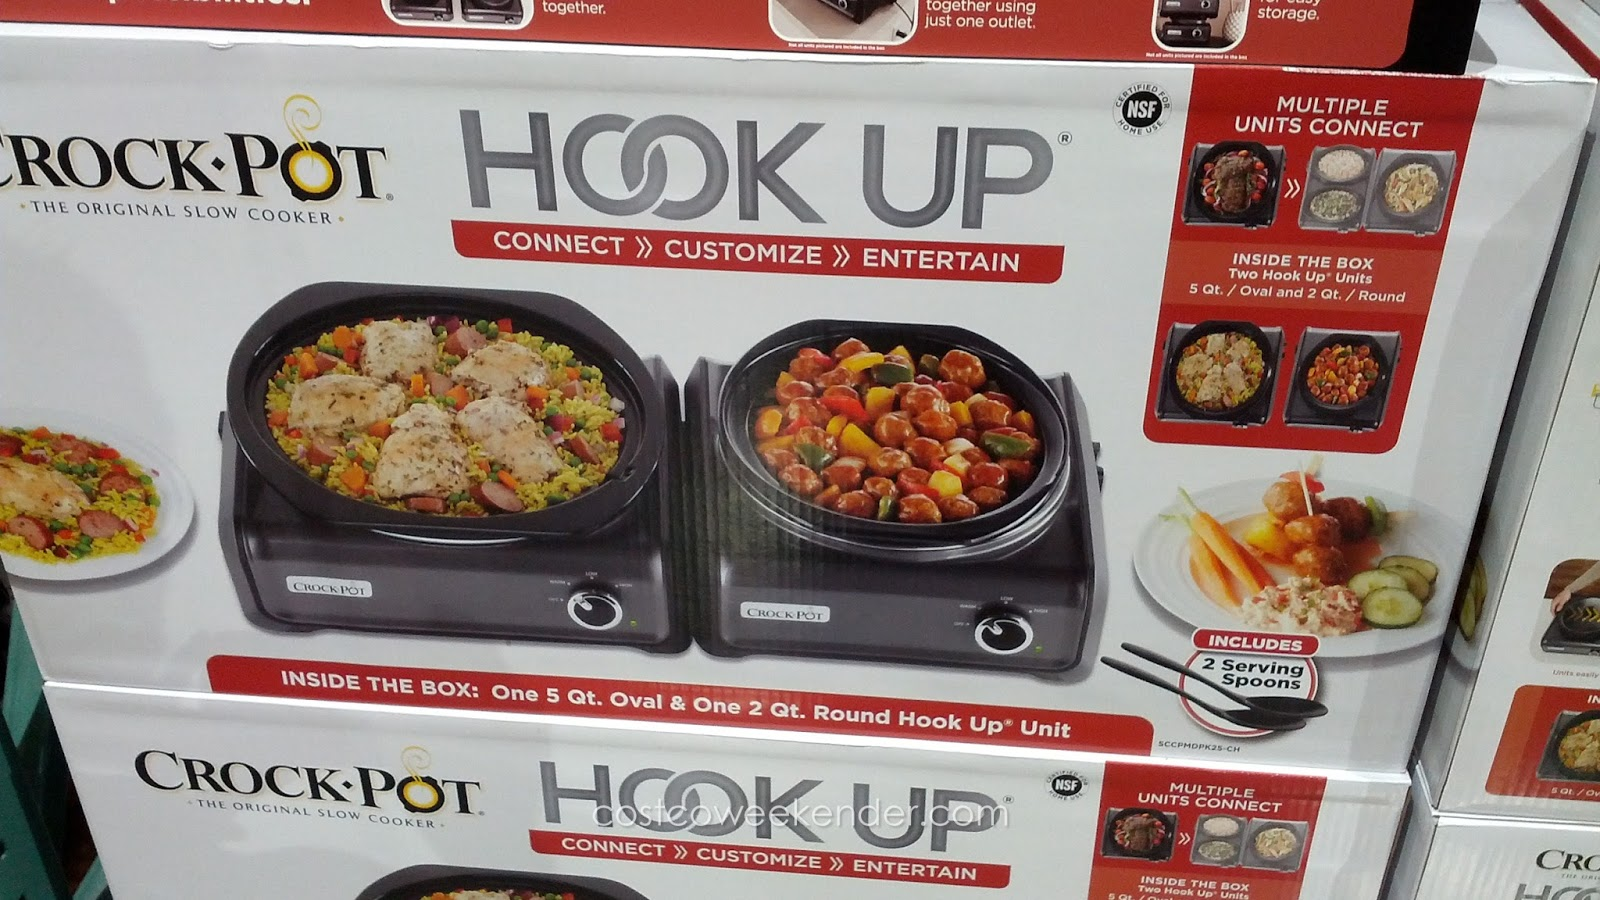 Cook pot hook up